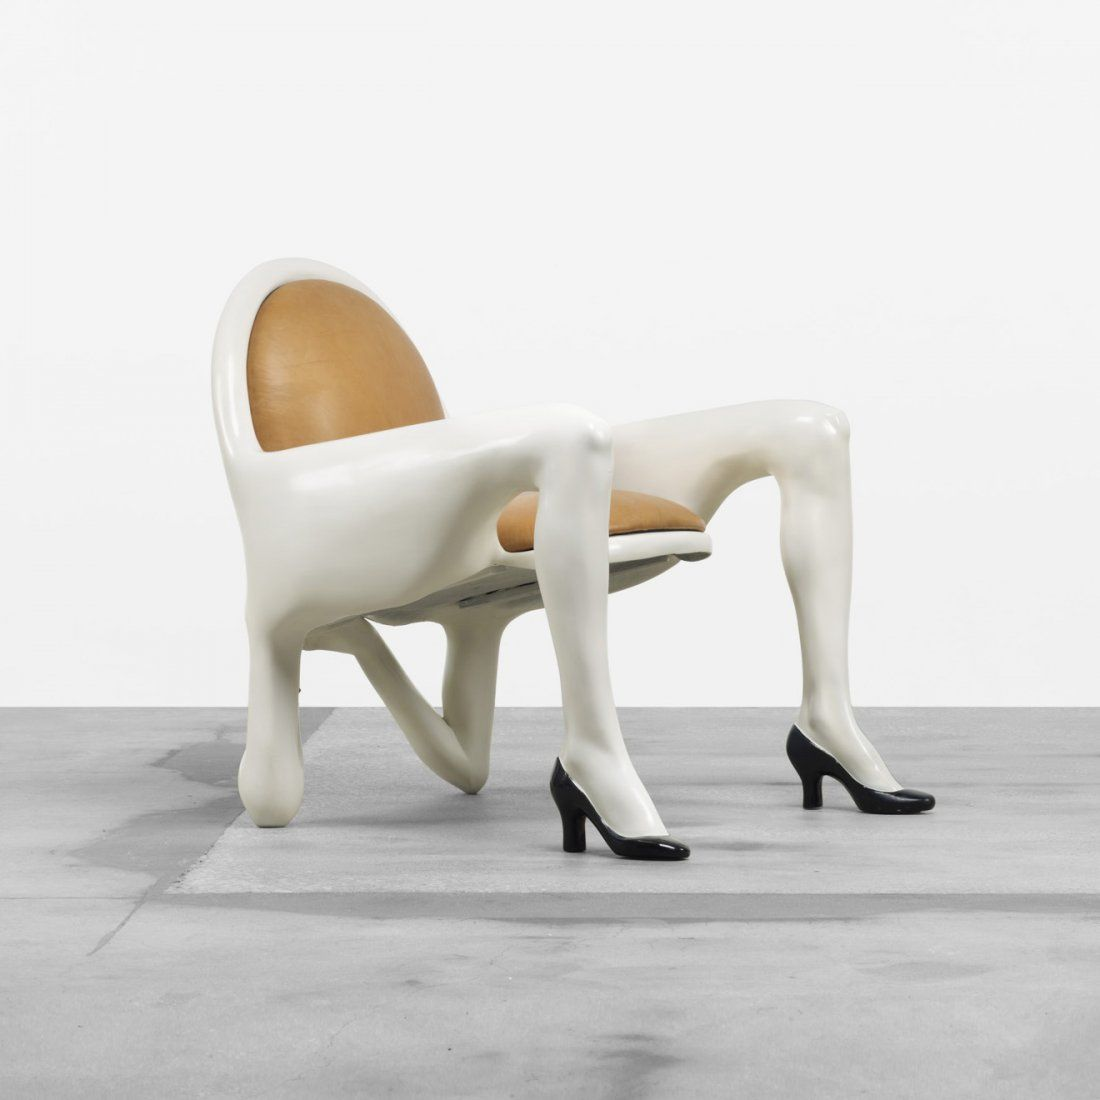 Post modern style furniture - Find This Pin And More On Unusual Furniture